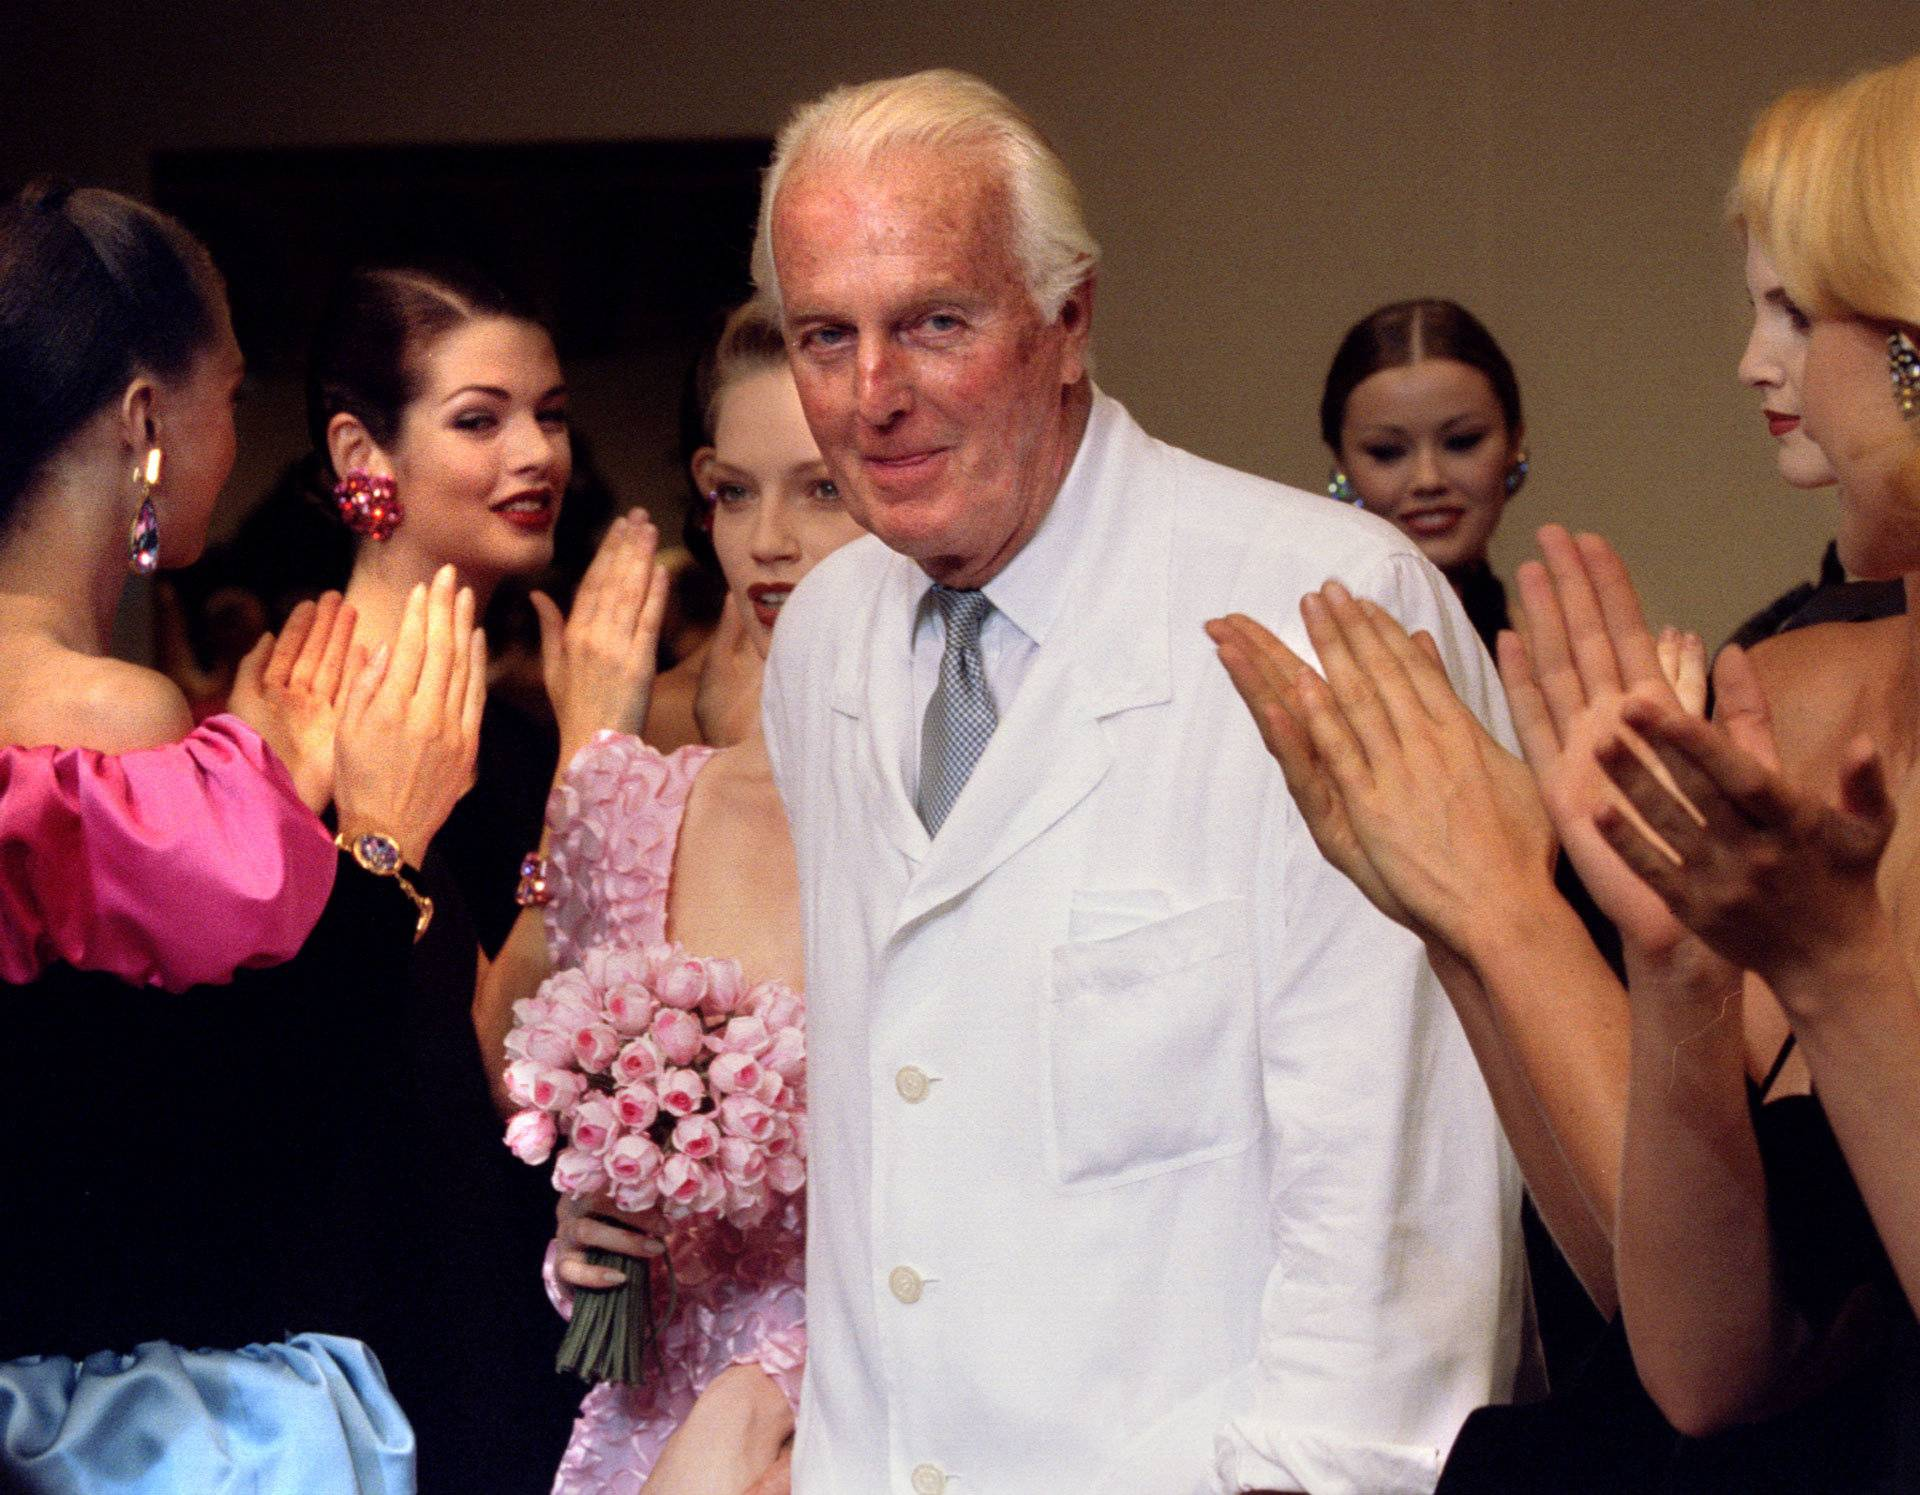 FILE PHOTO: French fashion designer Hubert de Givenchy is applauded by the models after he presented his last High Fashion collection Autumn/Winter 1995 in Paris